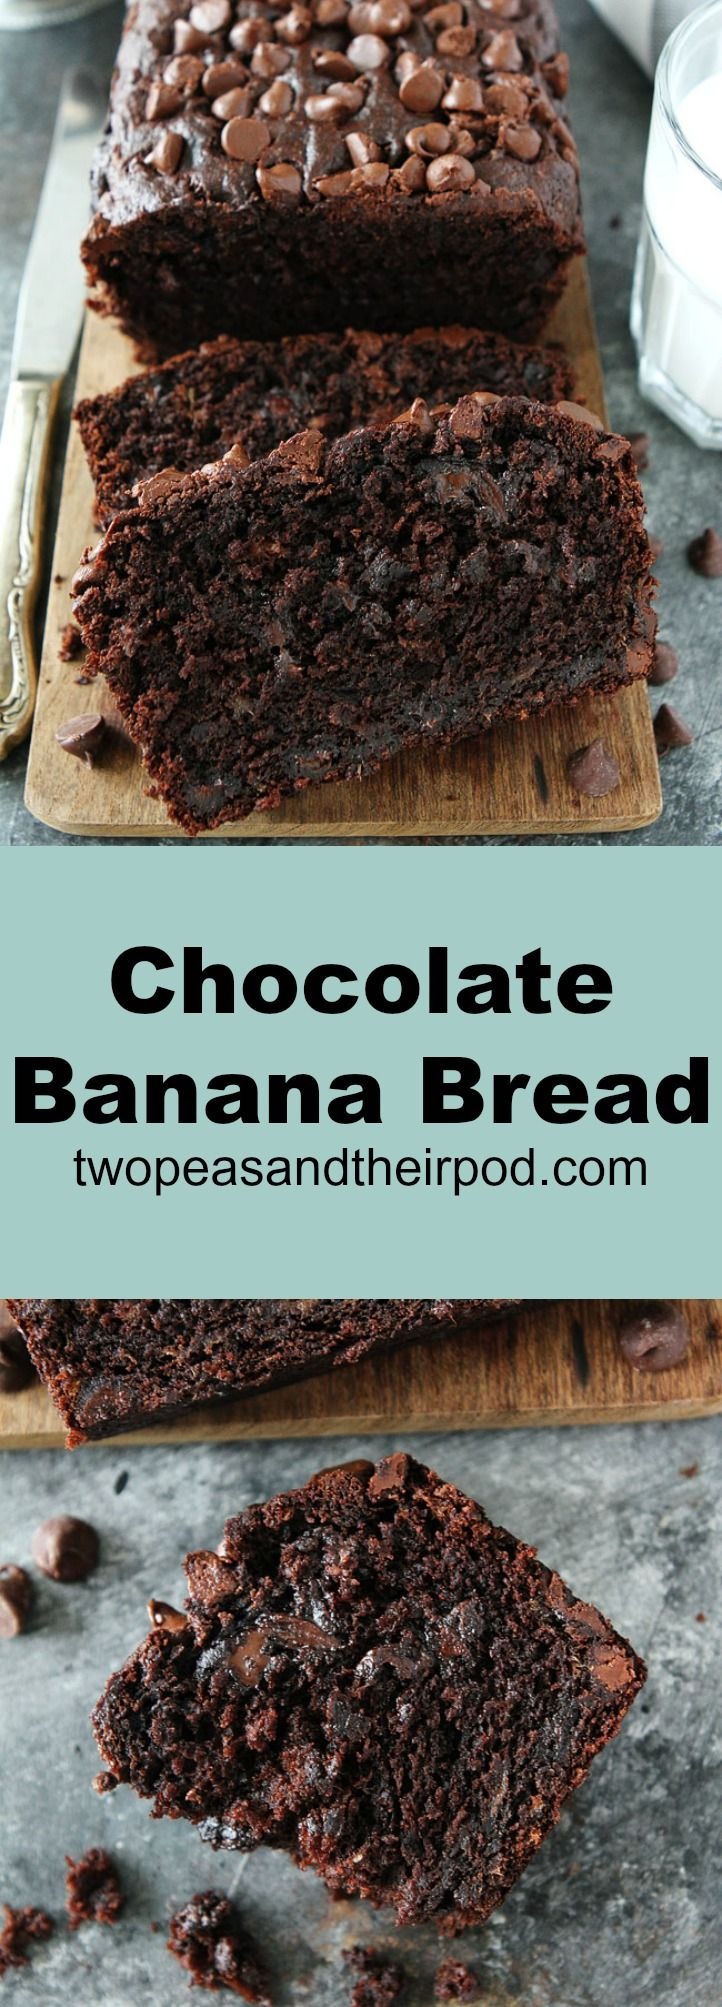 Chocolate Banana Bread Recipe on twopeasandtheirpod.com The BEST banana bread recipe! You have to try this one, it is so easy to make!